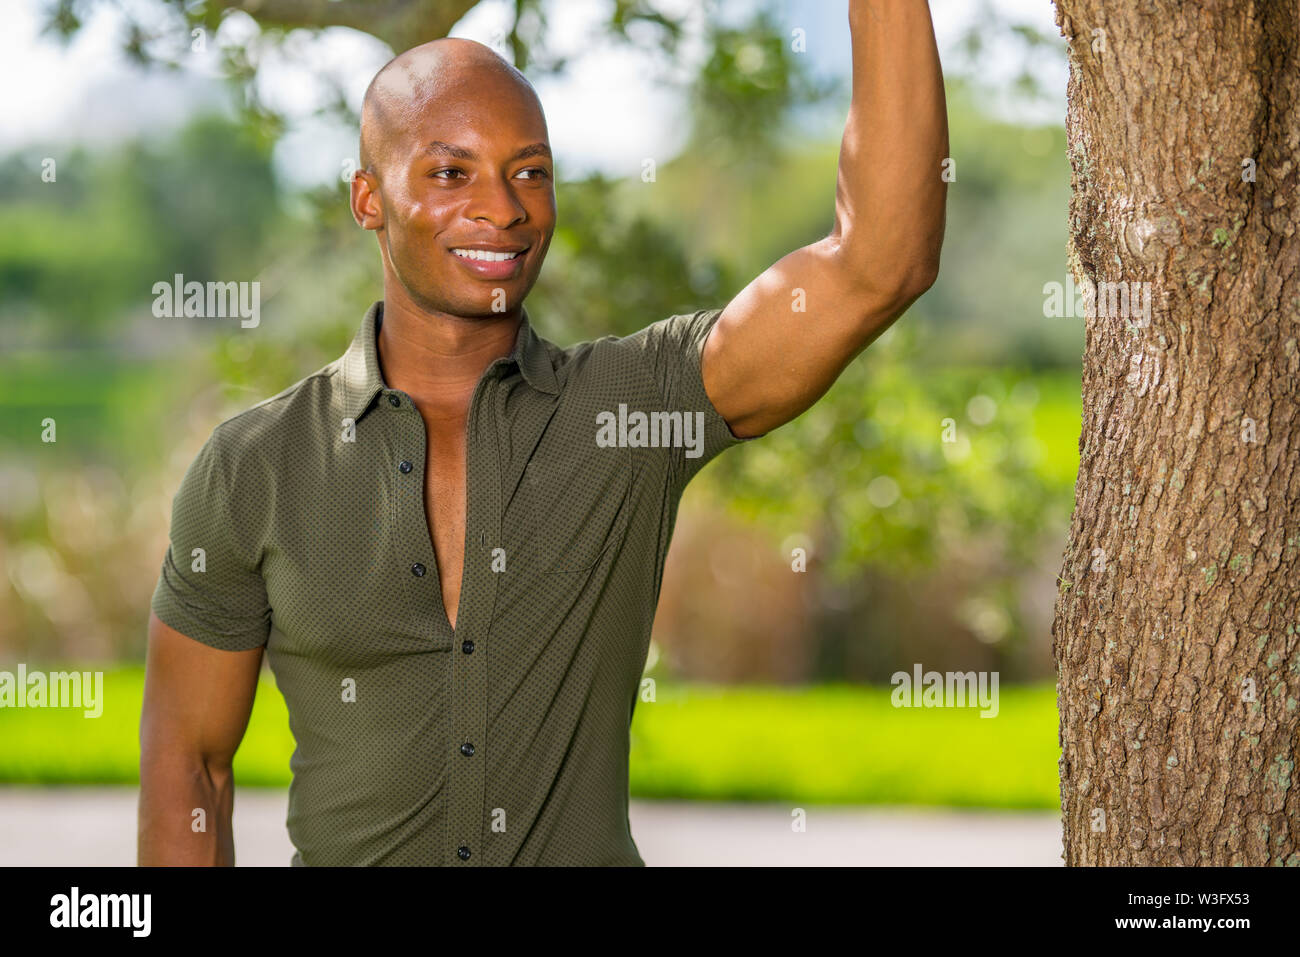 Handsome young African American man posing with hand on tree in the park. Person is smiling off camera - Stock Image